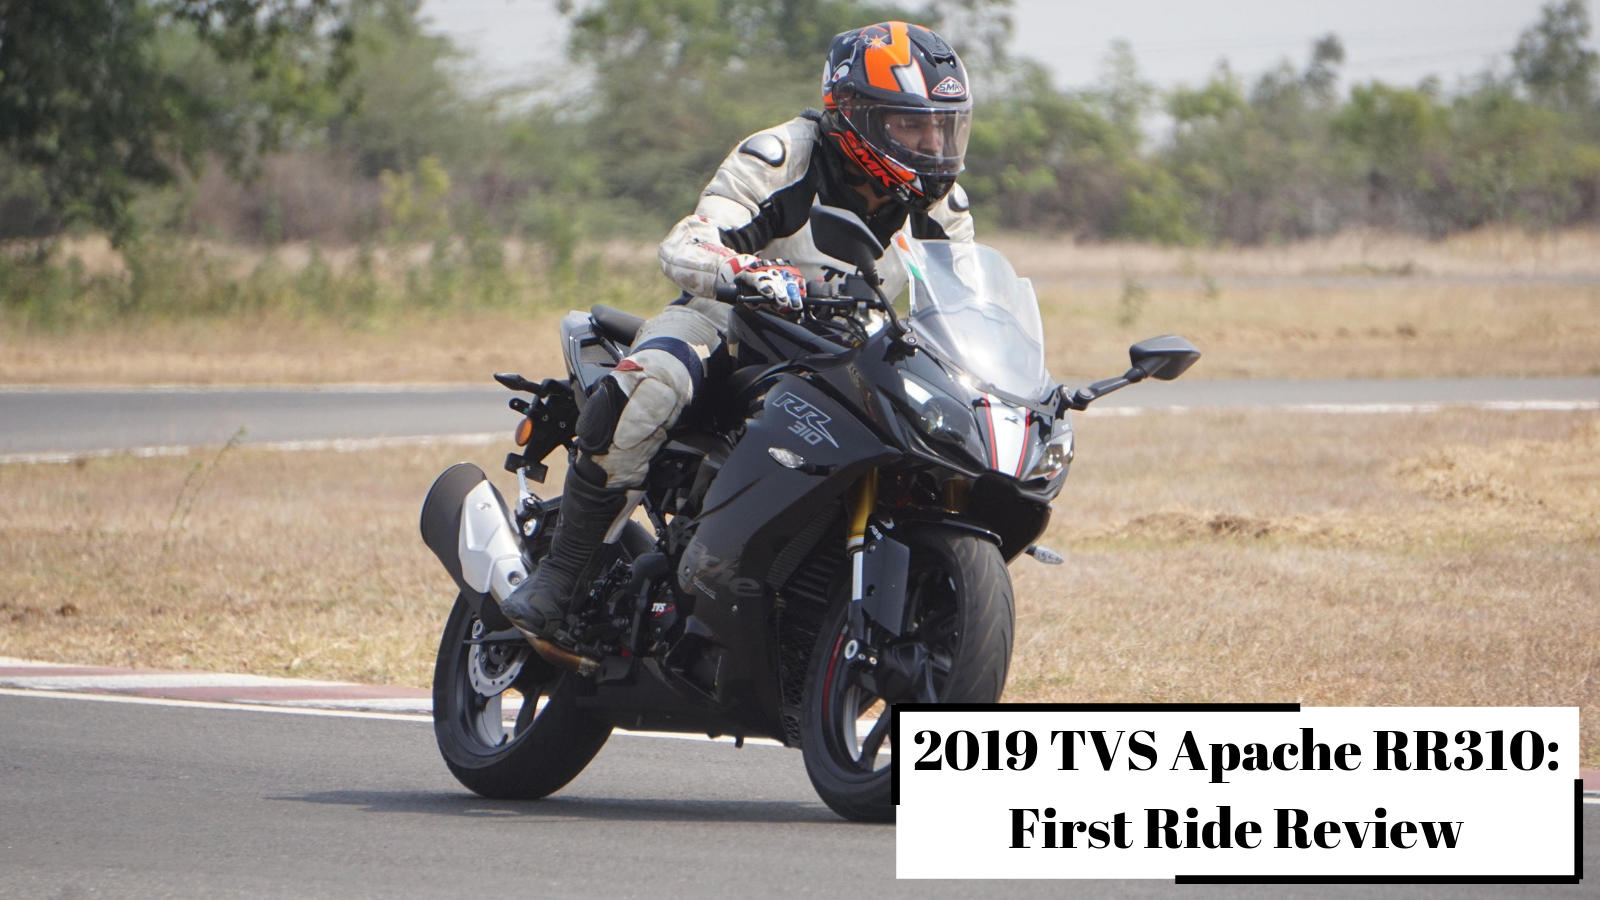 2019 TVS Apache RR310: First ride review